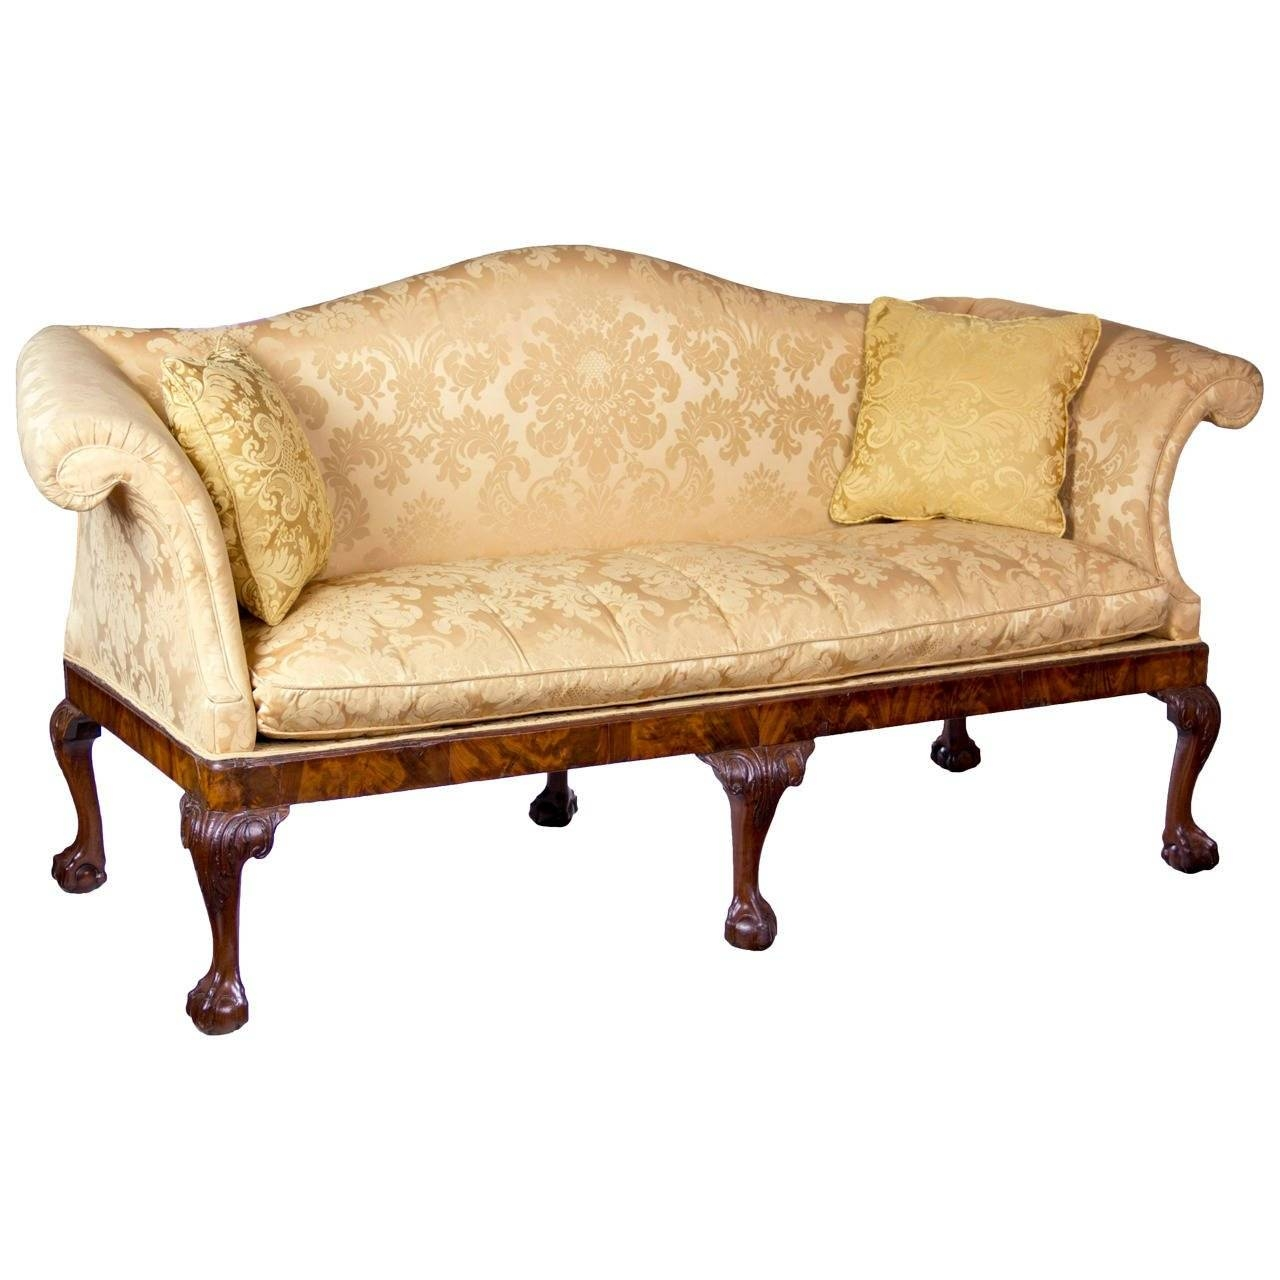 English Sofas - 136 For Sale At 1Stdibs inside Yellow Chintz Sofas (Image 17 of 30)